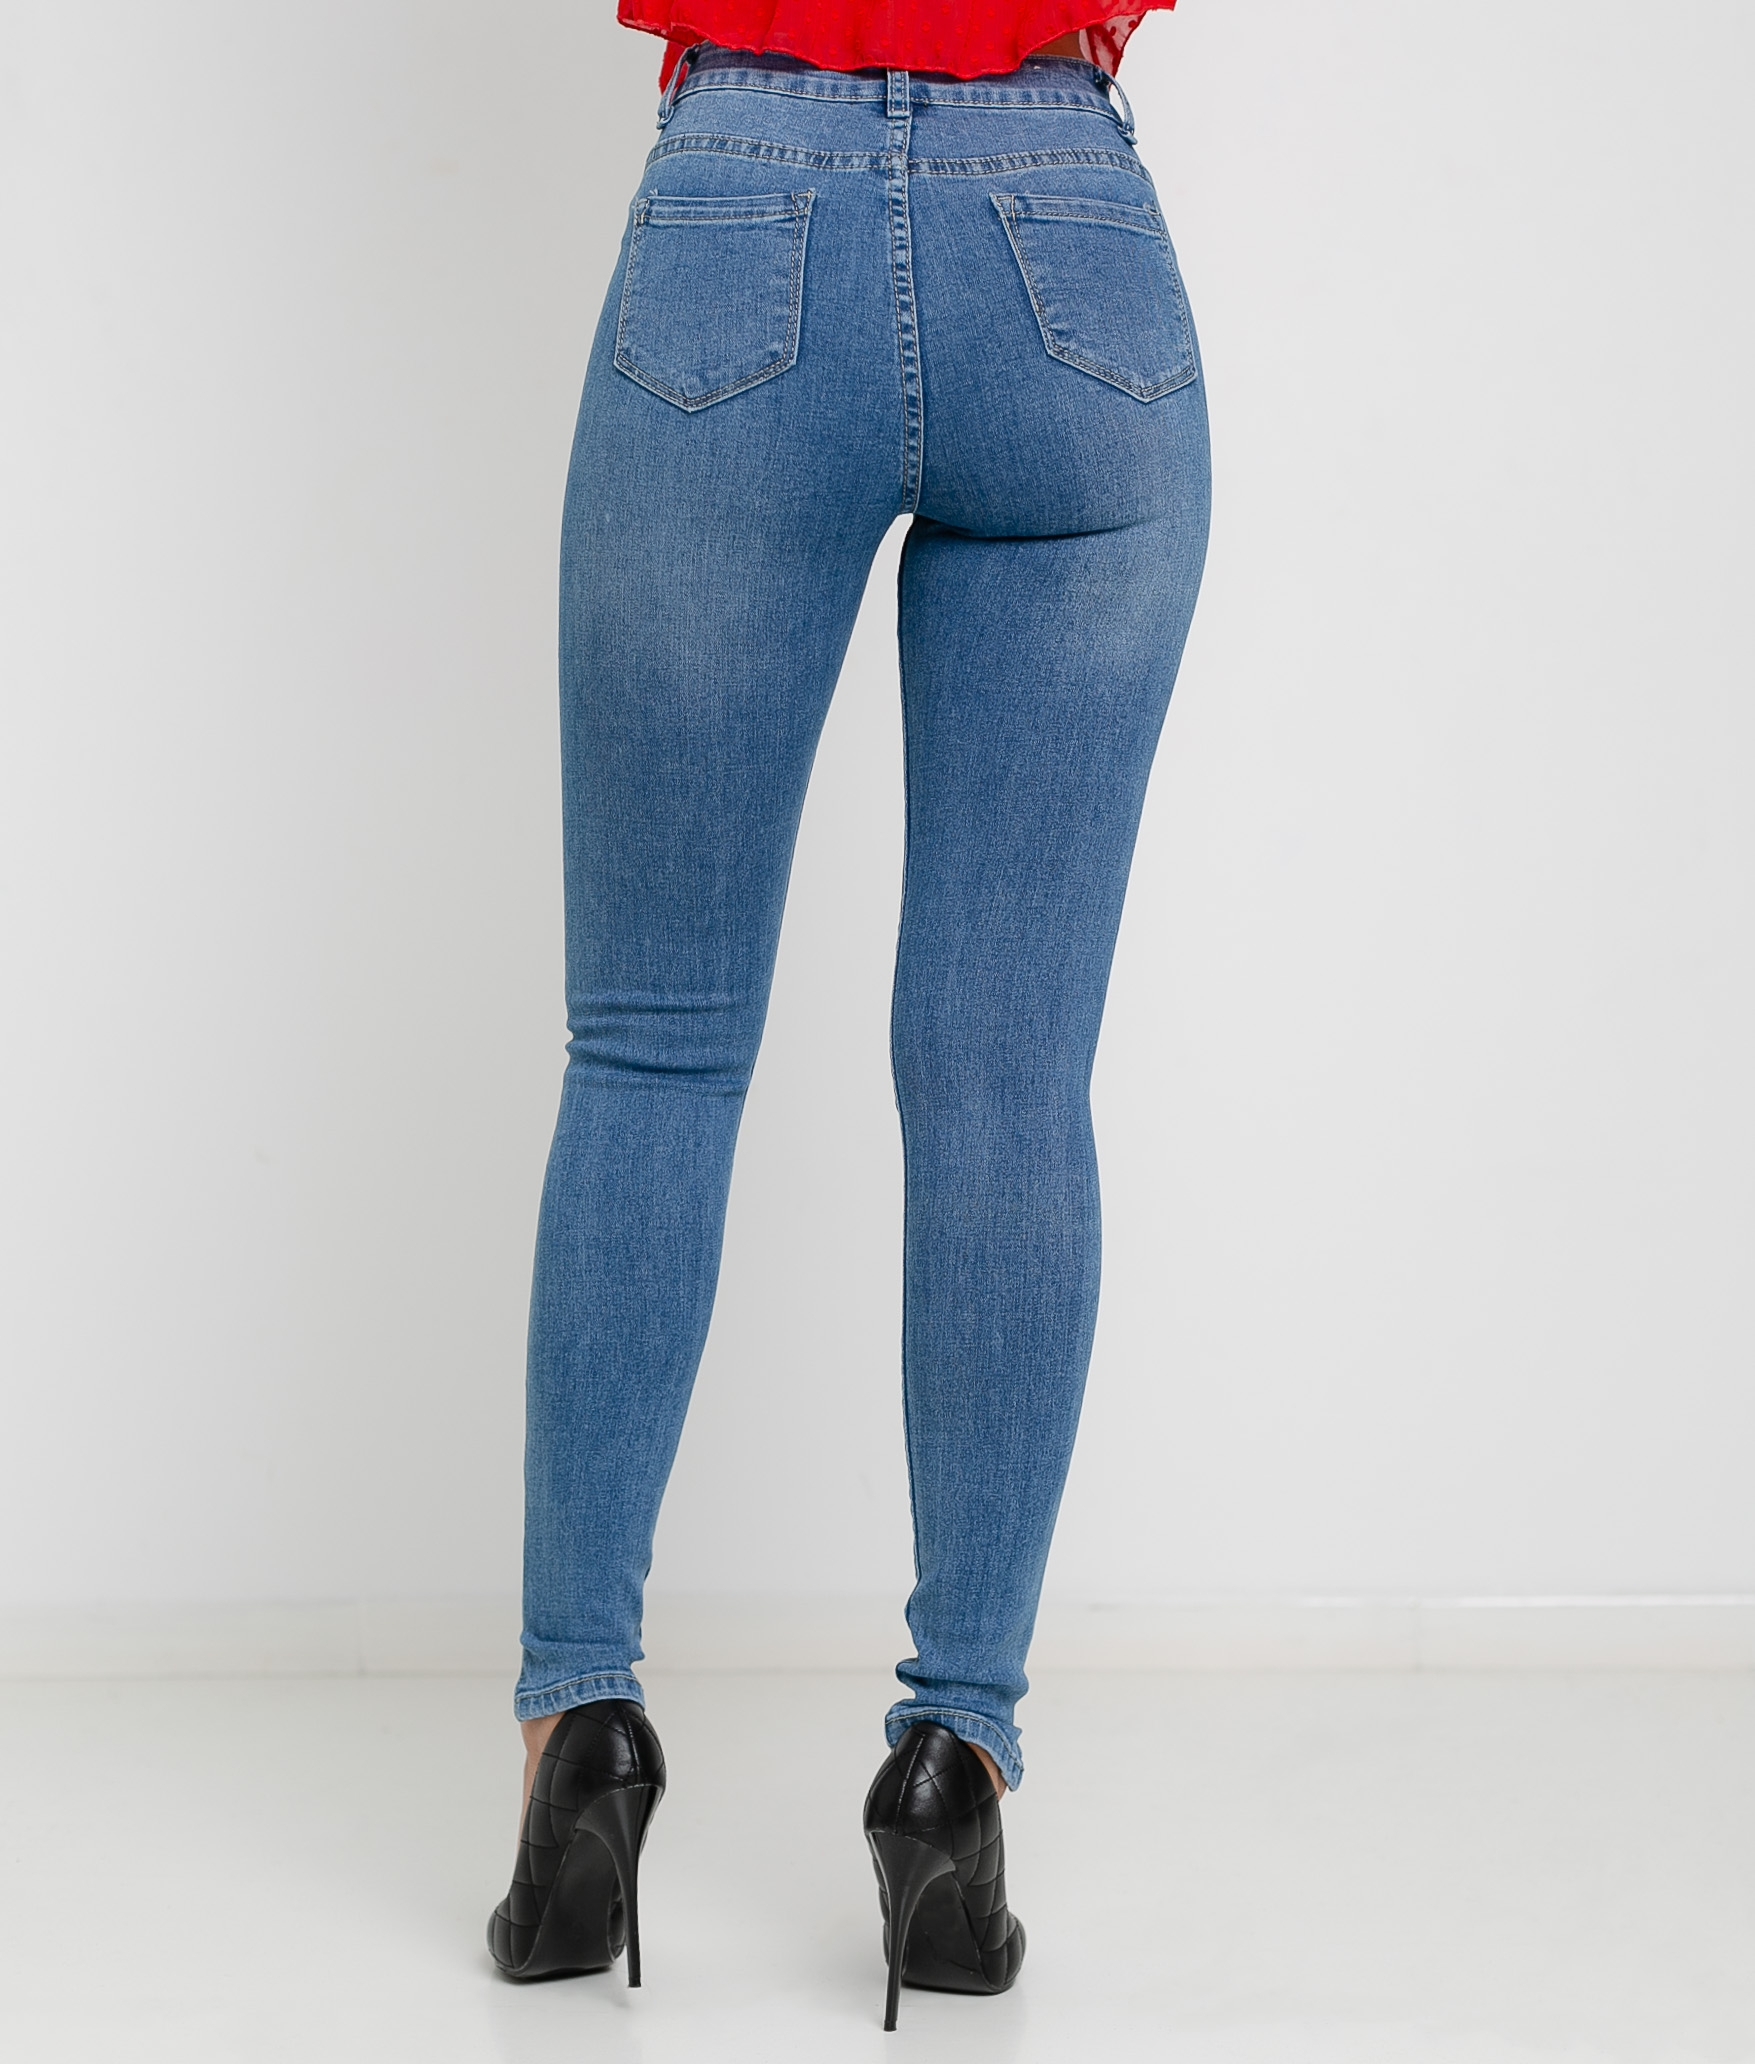 TROUSERS FALCONE - DENIM